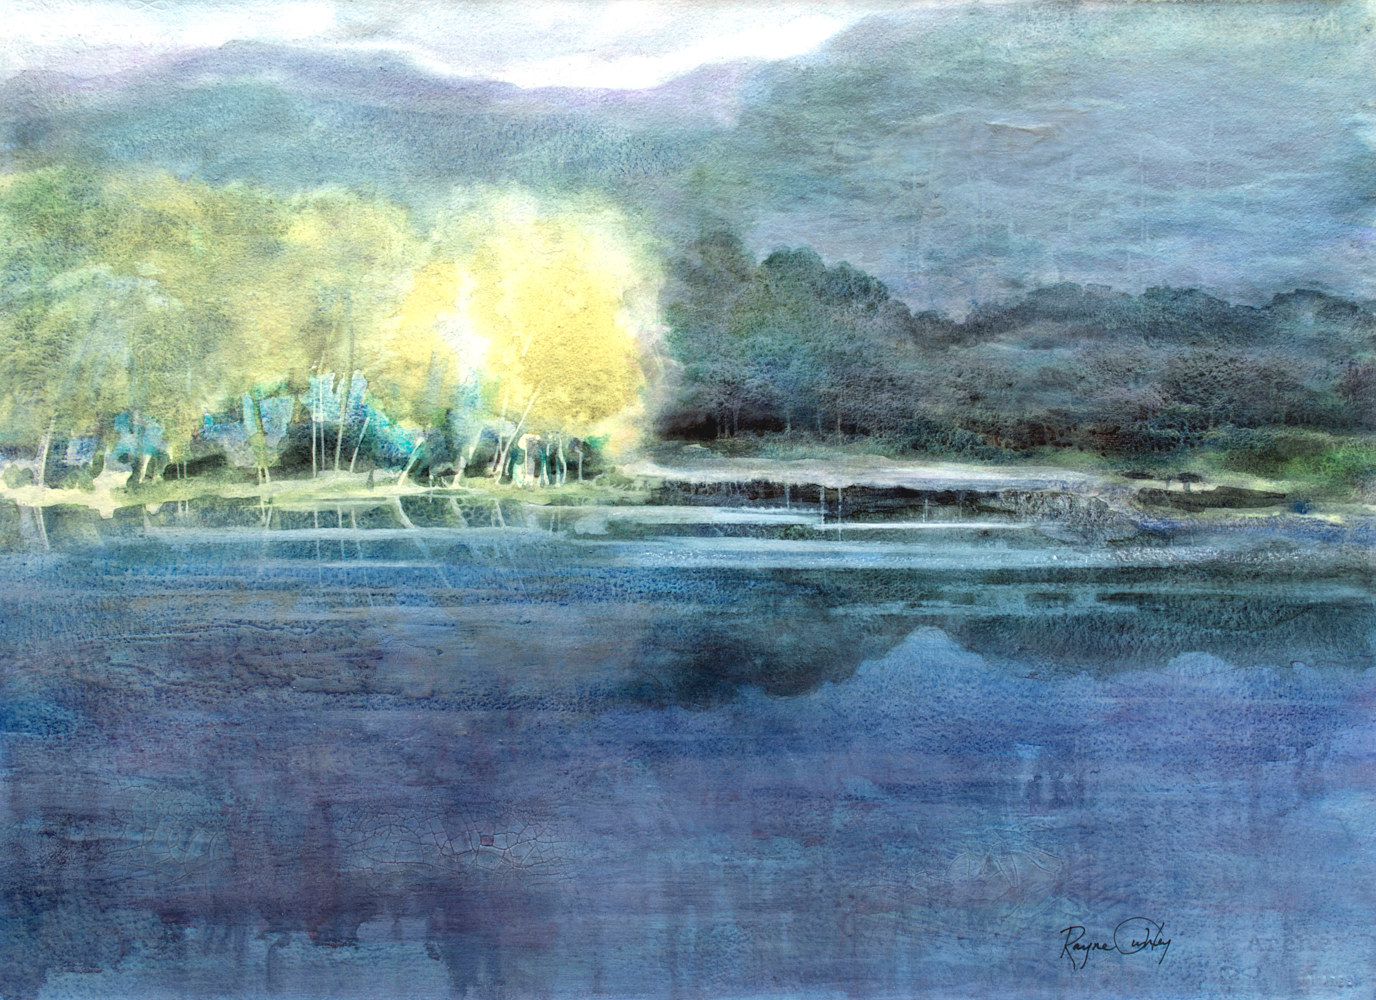 Rayne Tunley, Canoe Lake, 22in x 30in, watercolour smaller image by Rayne Tunley